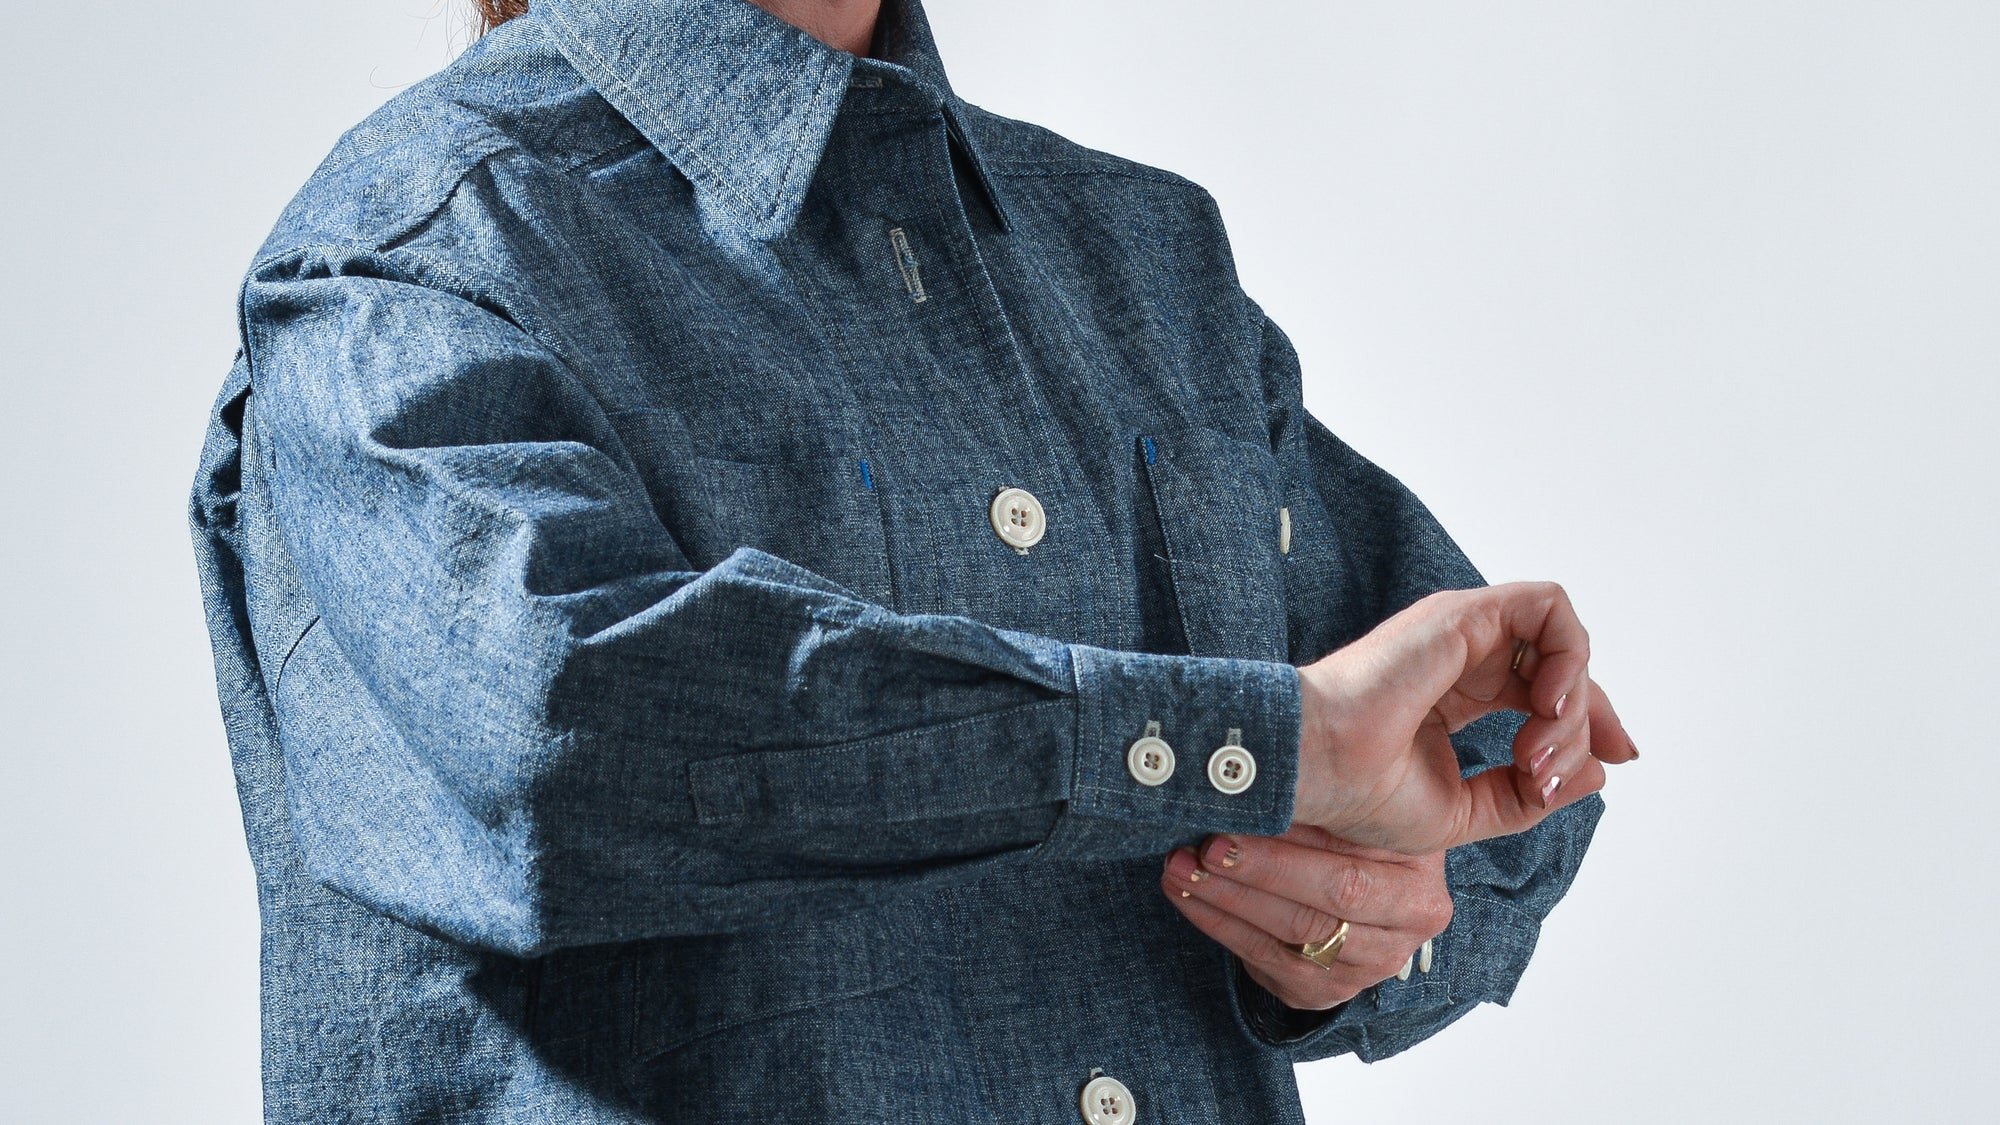 limited edition handmade cotton chambray canvas jacket with oversized fit and patch pockets